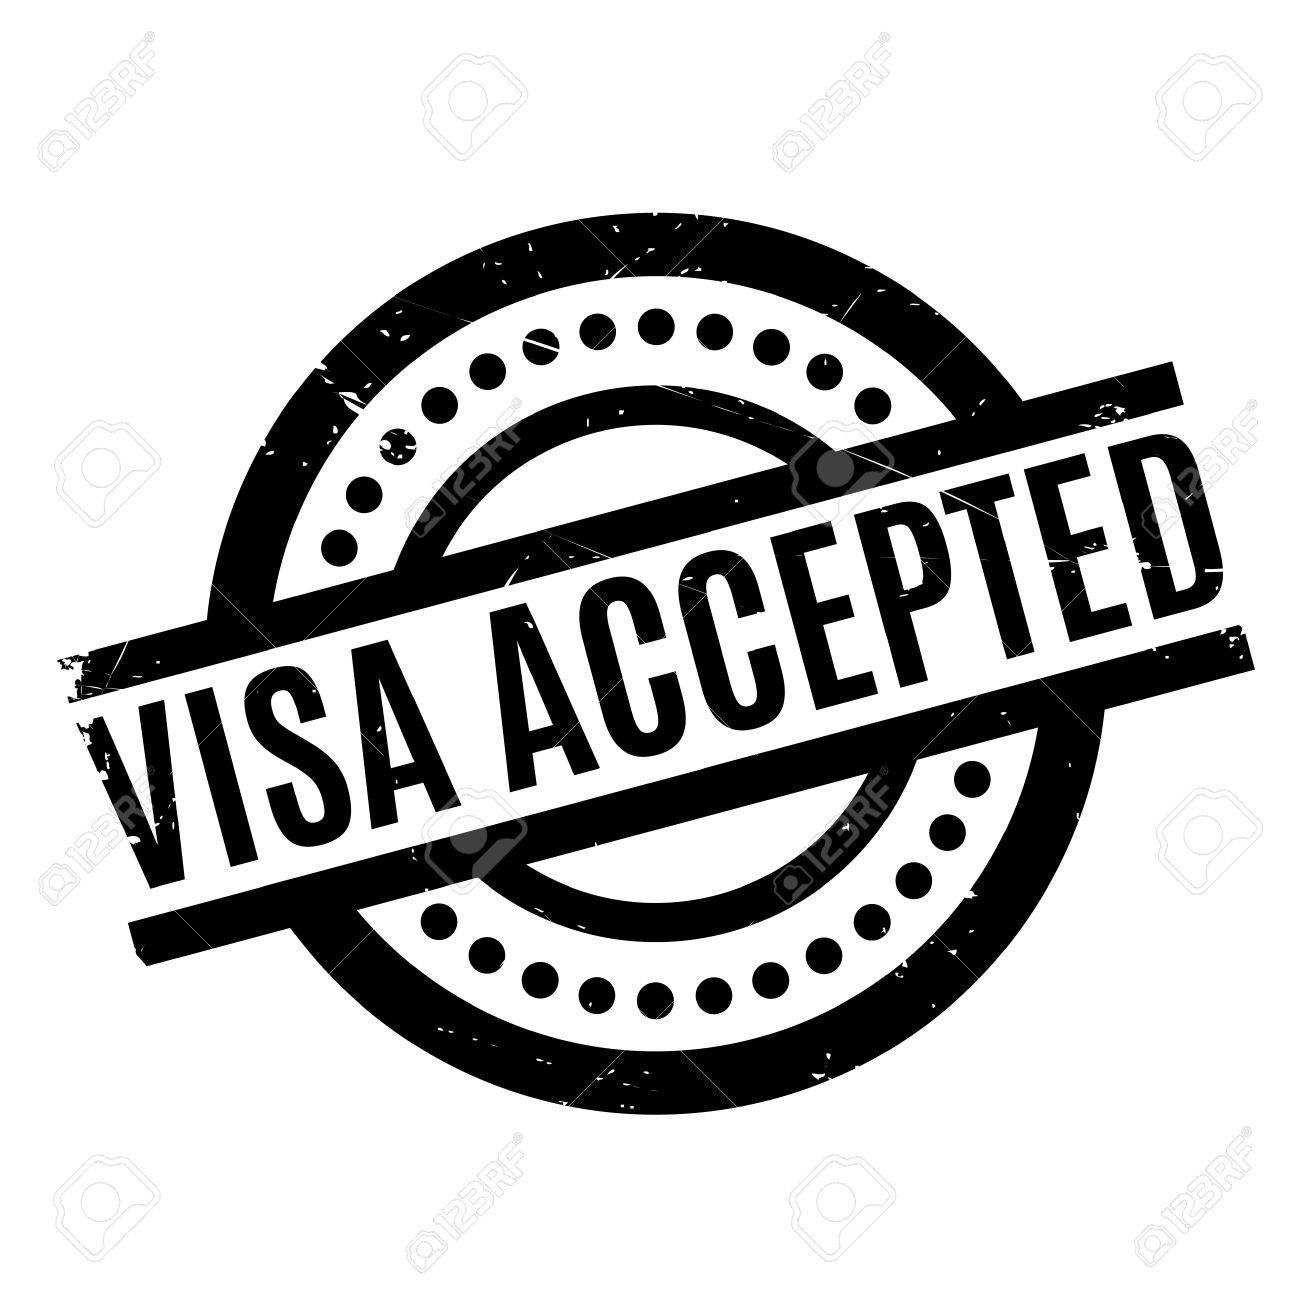 Visa accepted rubber stamp grunge design with dust scratches visa accepted rubber stamp grunge design with dust scratches effects can be easily removed biocorpaavc Choice Image